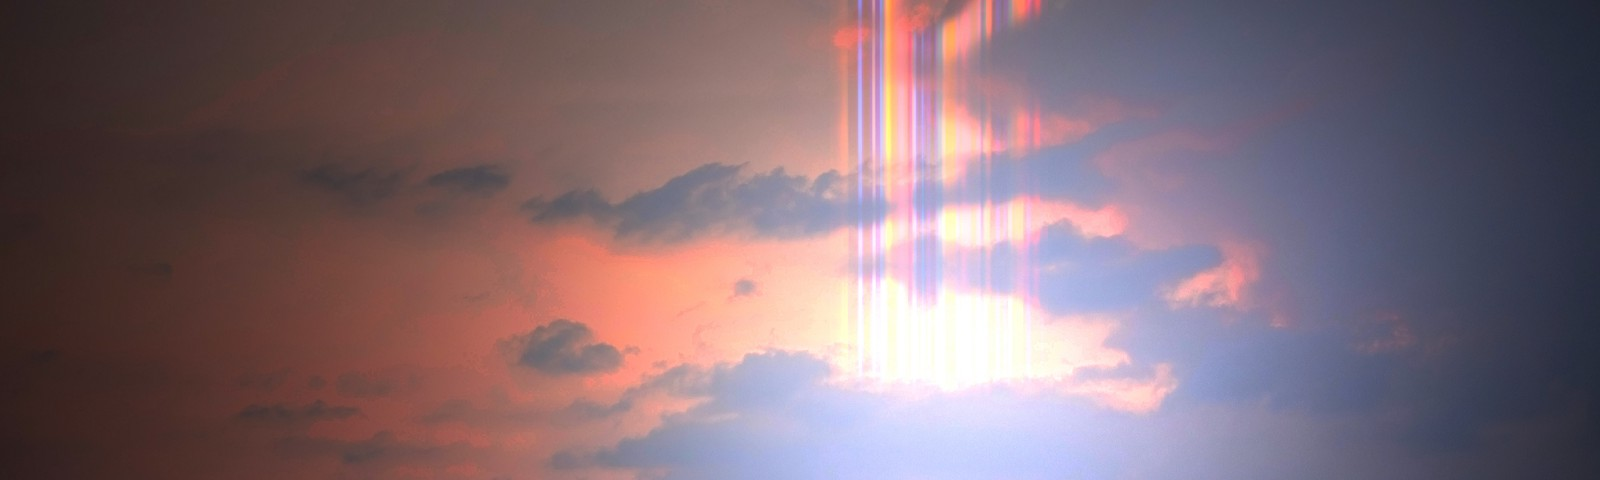 Beautiful rainbow flare in the sunset sky with bright light.